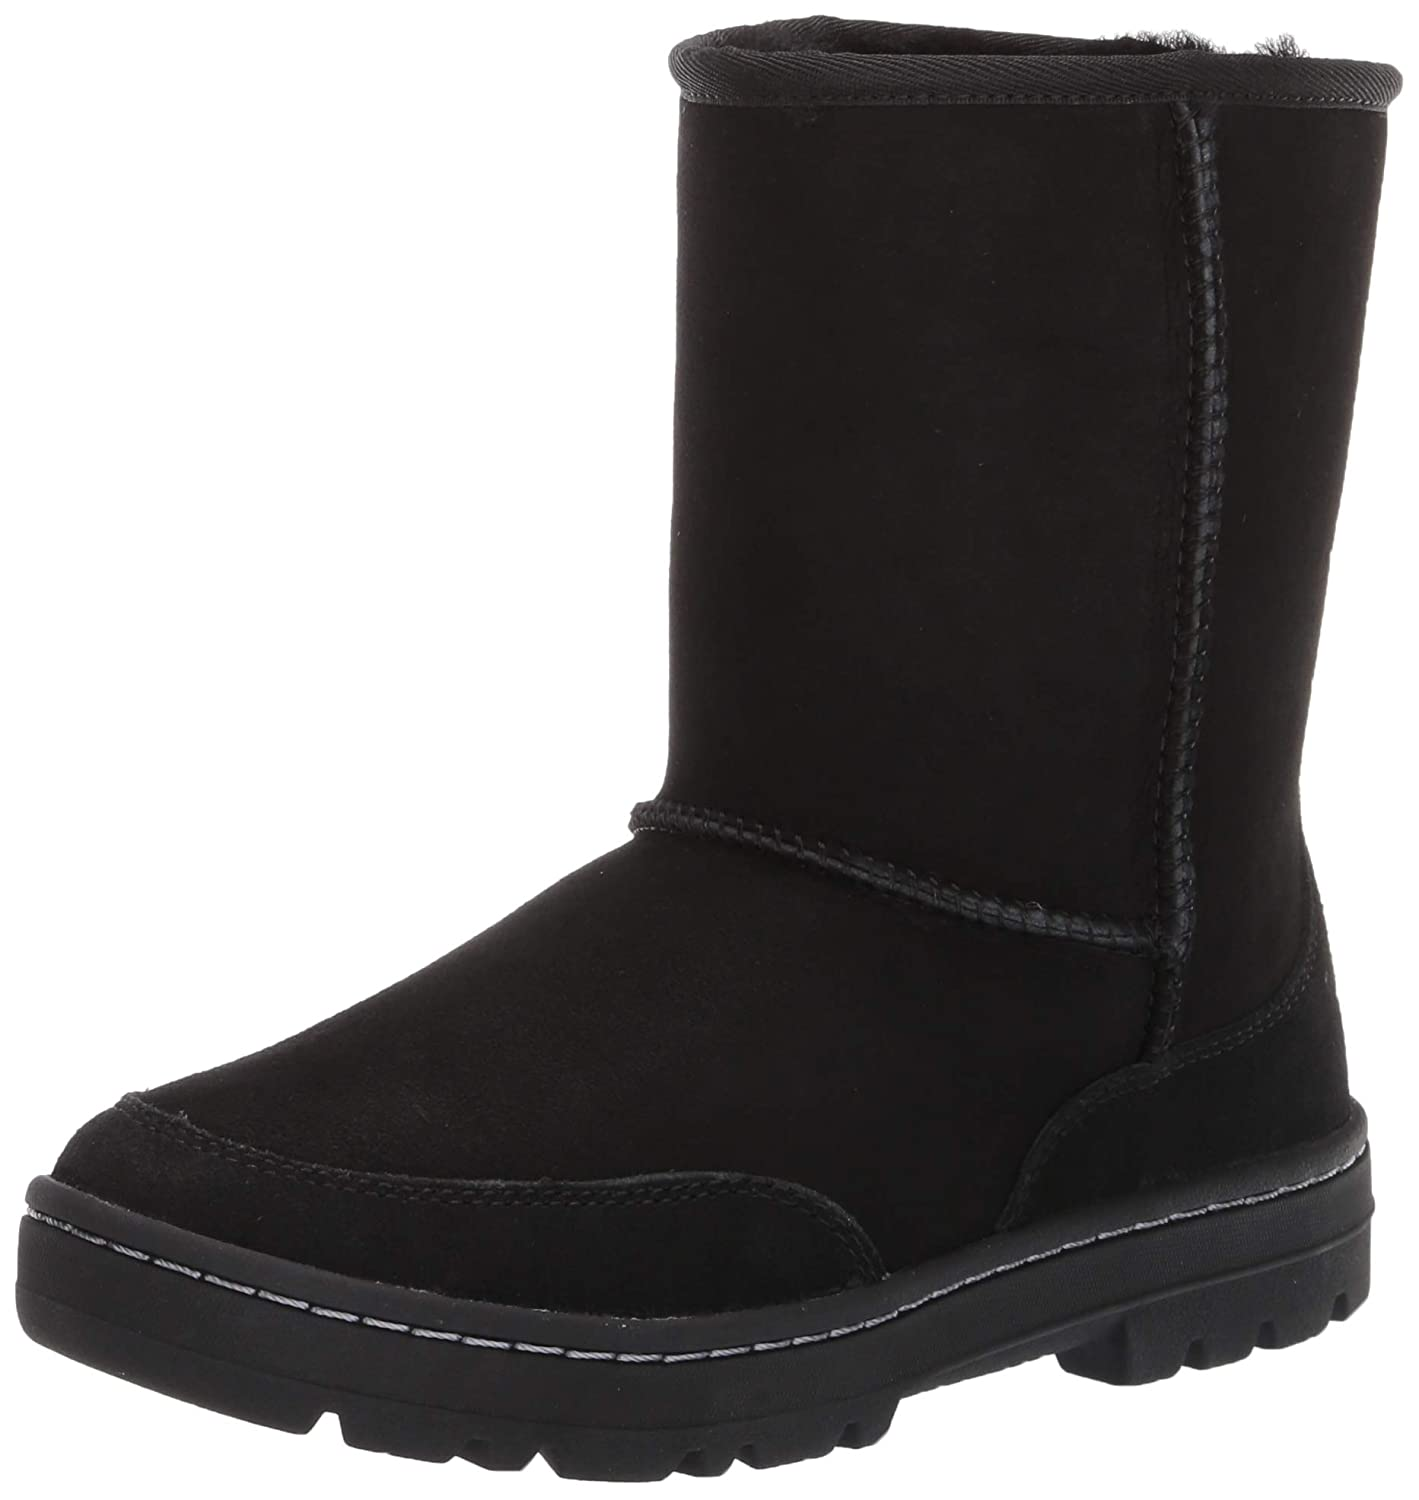 d476ff8a9b8 UGG Women's W Ultra Short Revival Fashion Boot